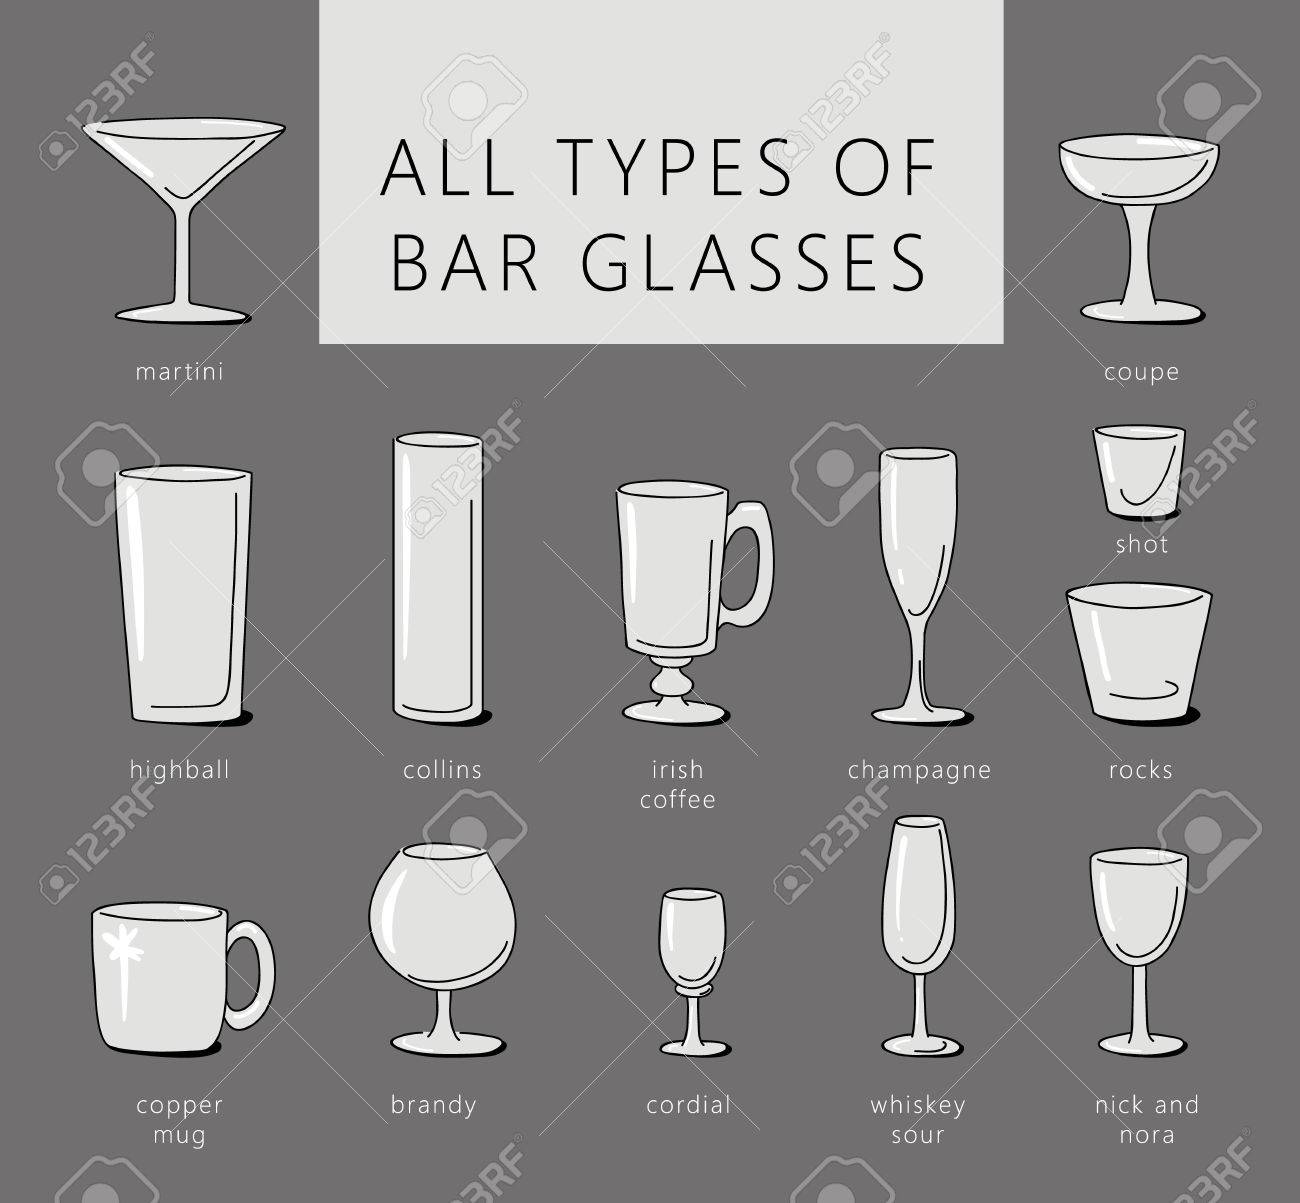 Bar Glasses Vector Icons Set Vector Types Of Barware Glasses Royalty Free Cliparts Vectors And Stock Illustration Image 73765869